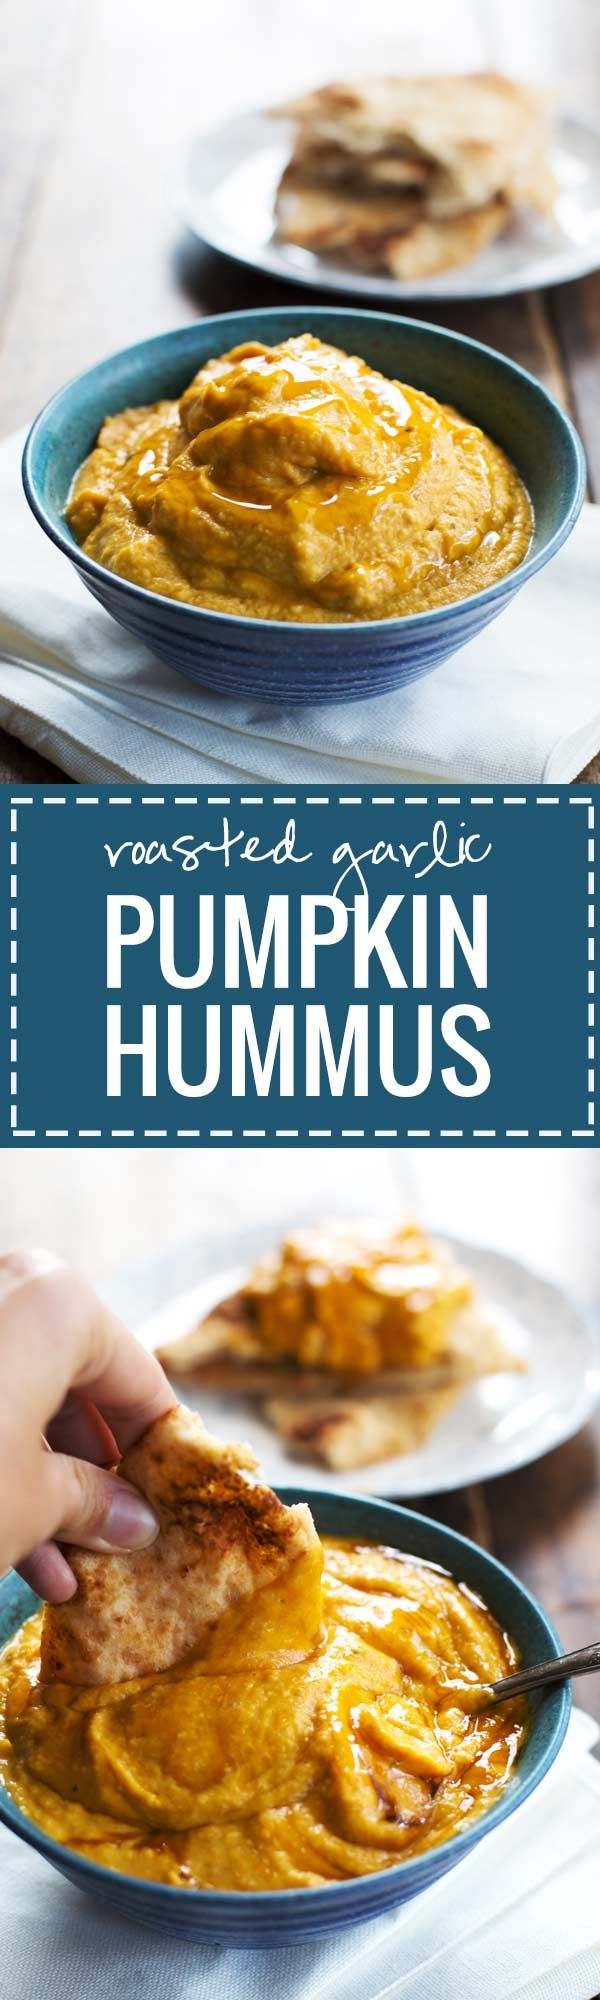 This Roasted Garlic & Rosemary Pumpkin Hummus has amazing flavor and just 100 calories! Takes 5 minutes and you can serve it with pita bread, veggies, and other snacks | pinchofyum.com